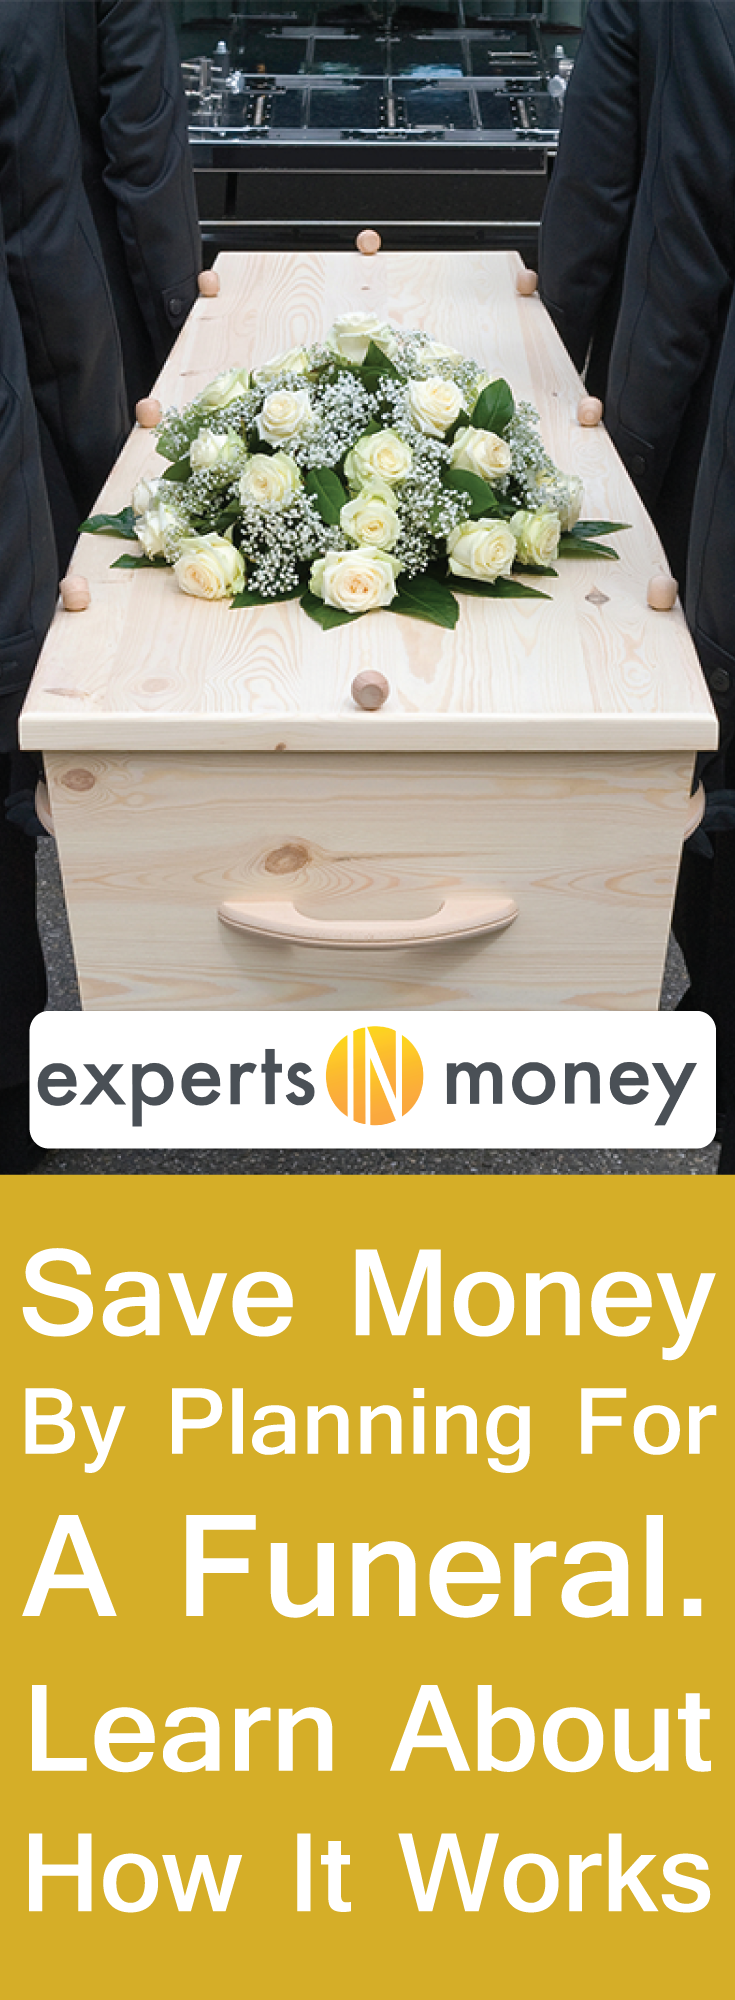 Nowadays Funerals Cost An Average Of 8126 A Funeral Plan Can